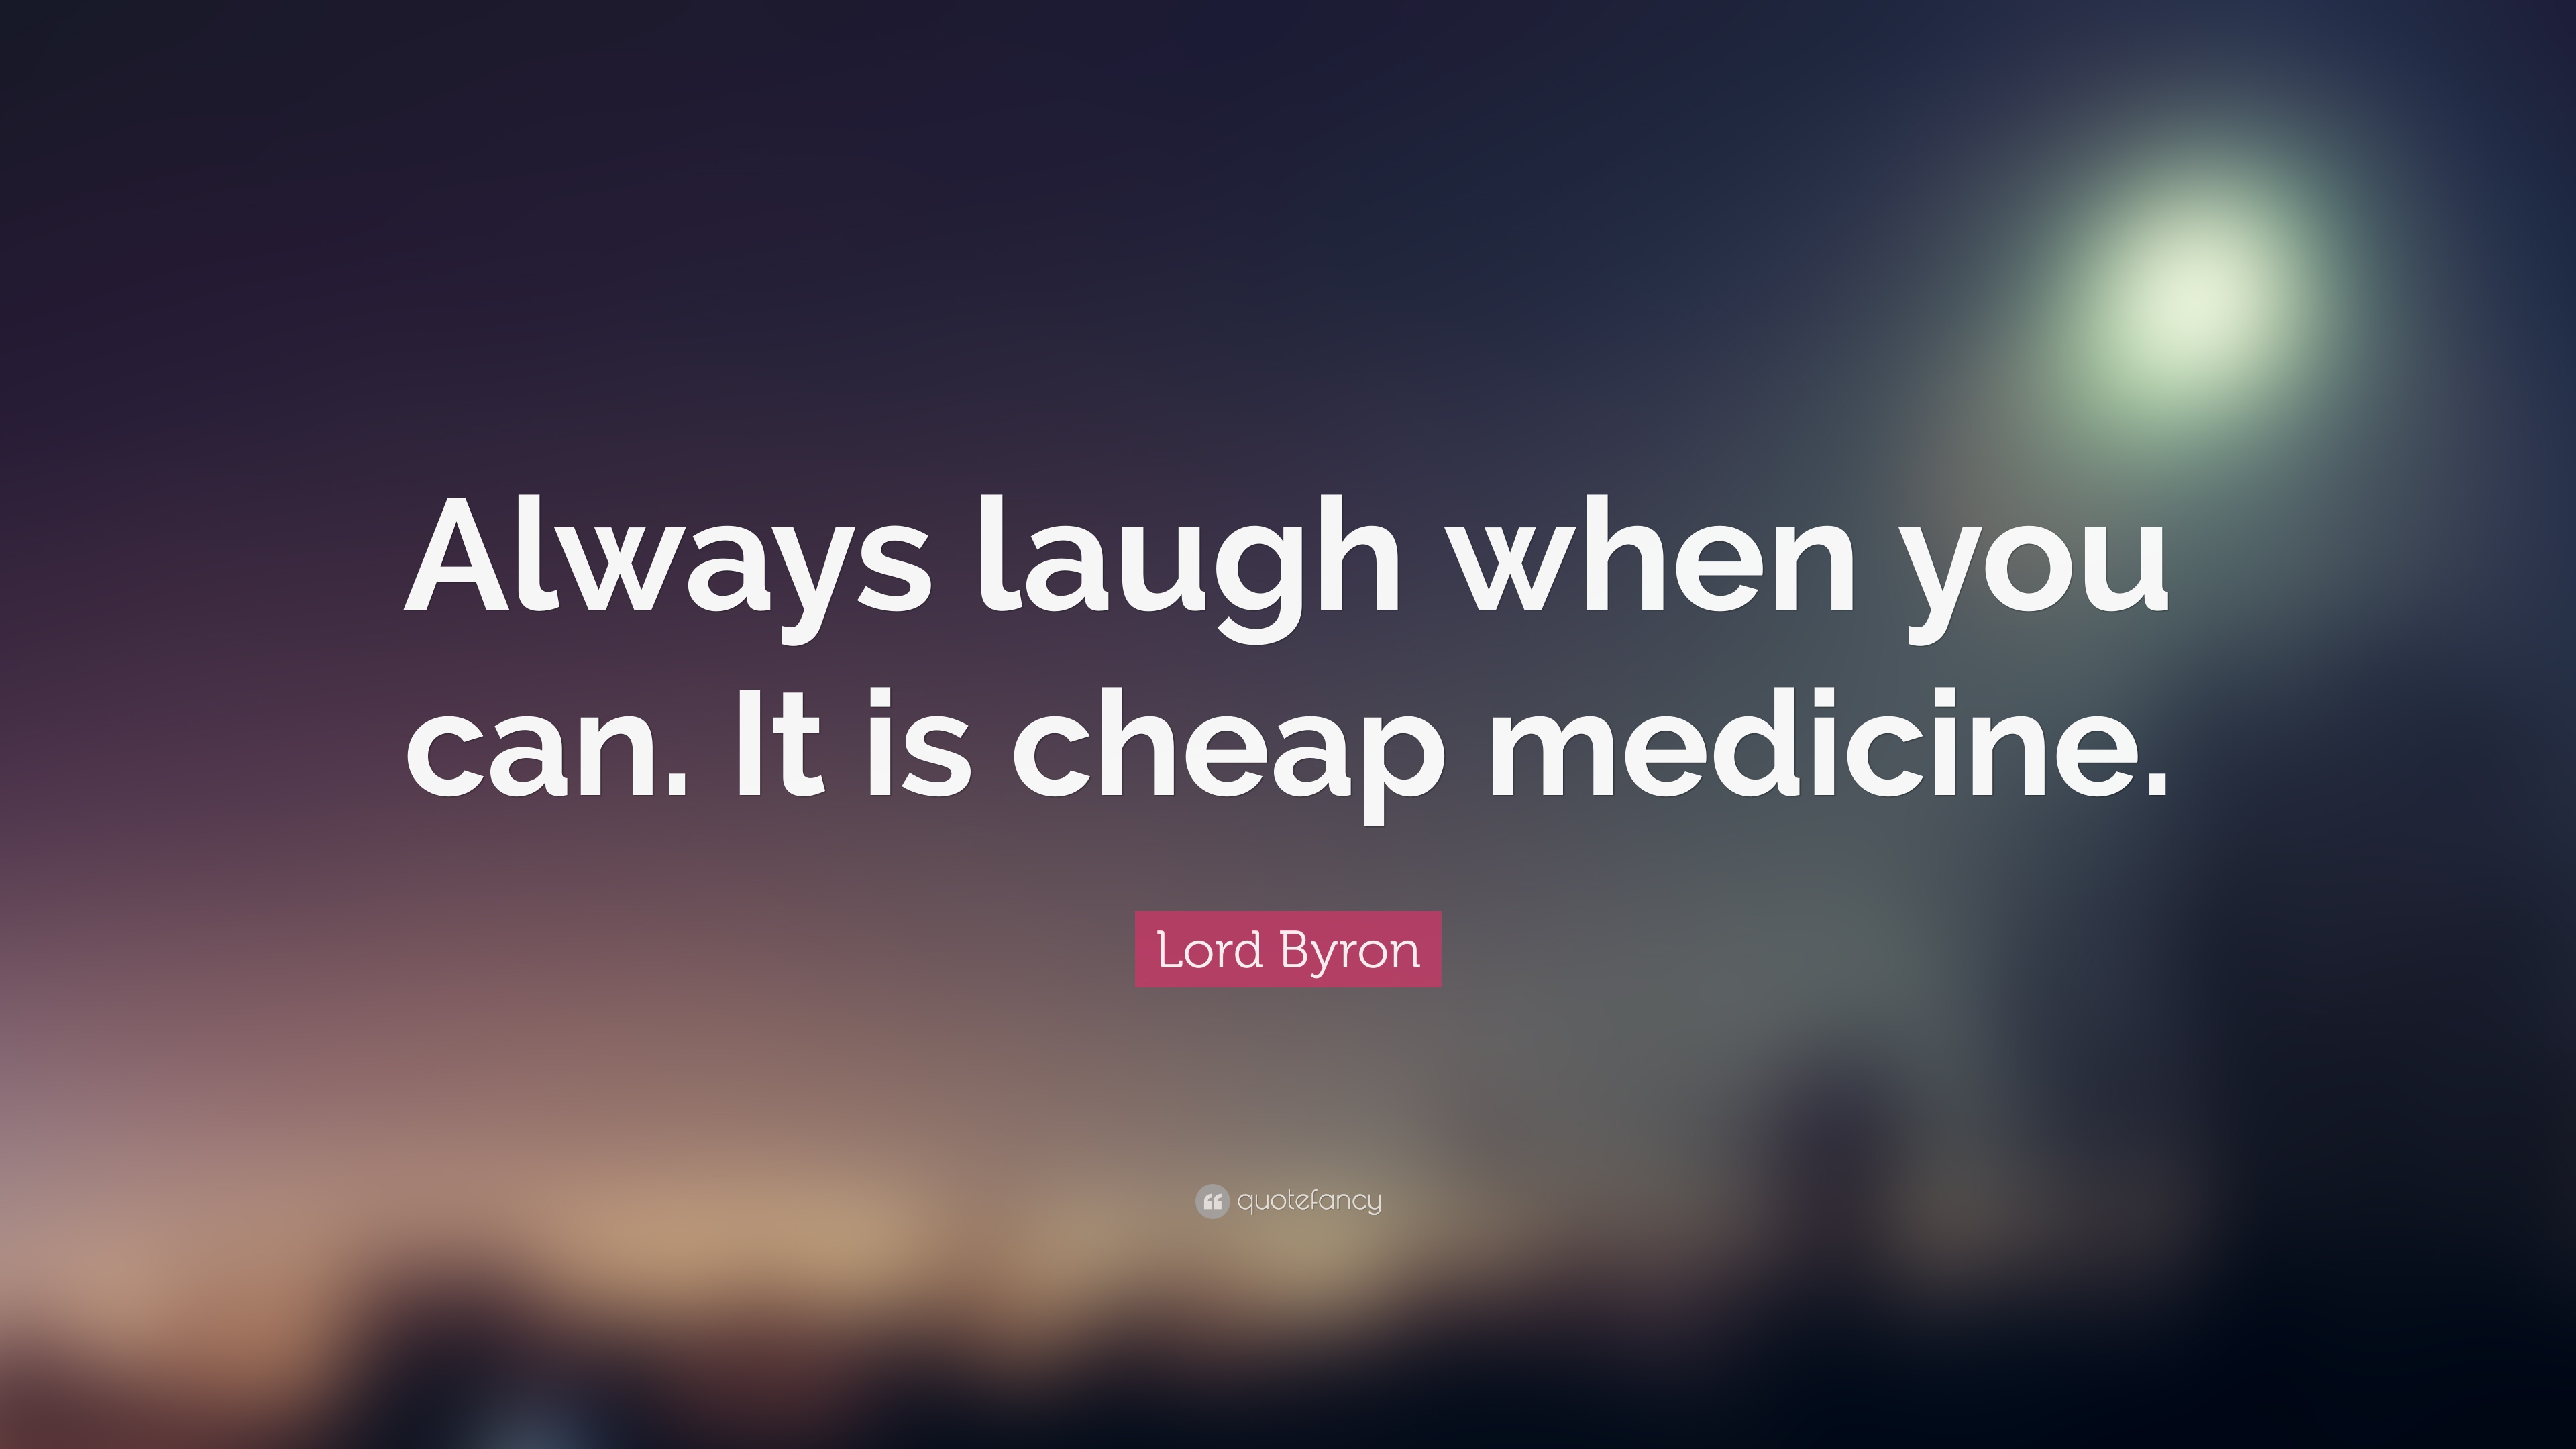 Beautiful Smile Quotes Wallpapers Lord Byron Quote Always Laugh When You Can It Is Cheap